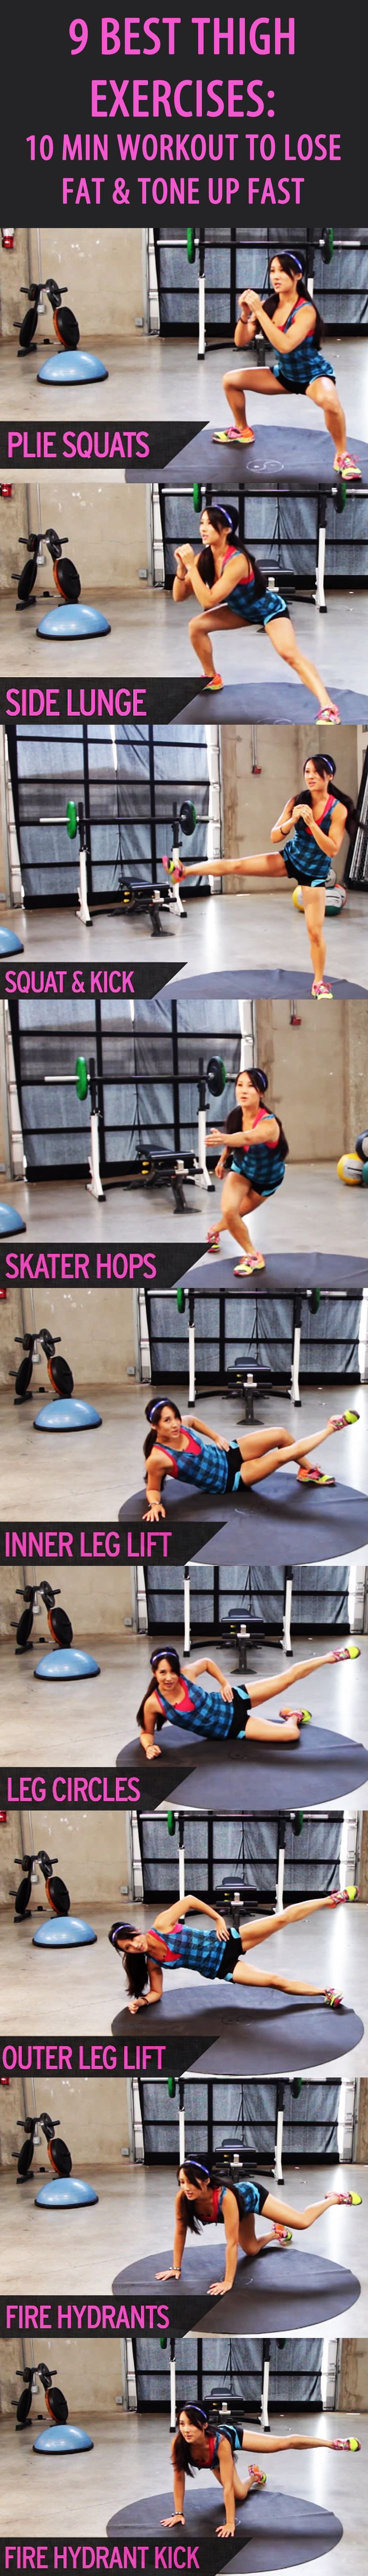 9 BEST THIGH EXERCISES: Our favorite fitness trainer Kelsey Lee: